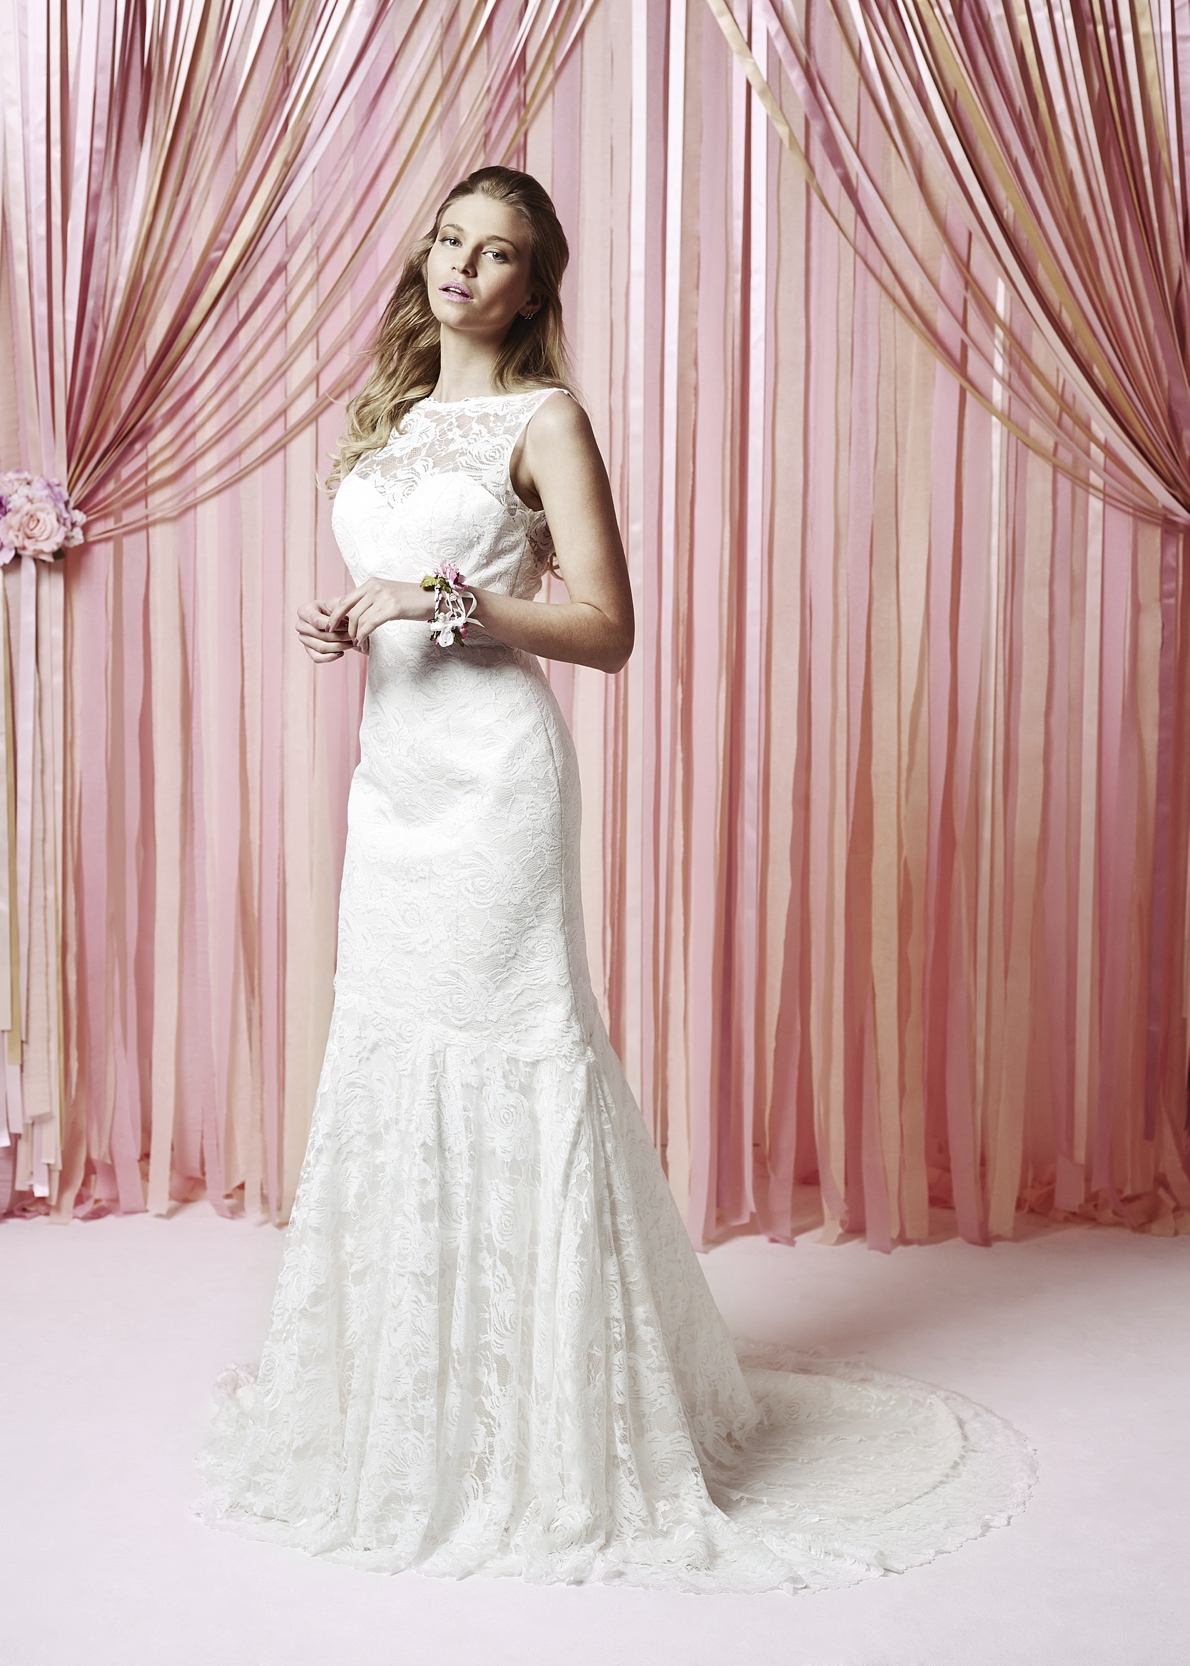 Petite Bridal Collection - Butterfly Bridal Boutique